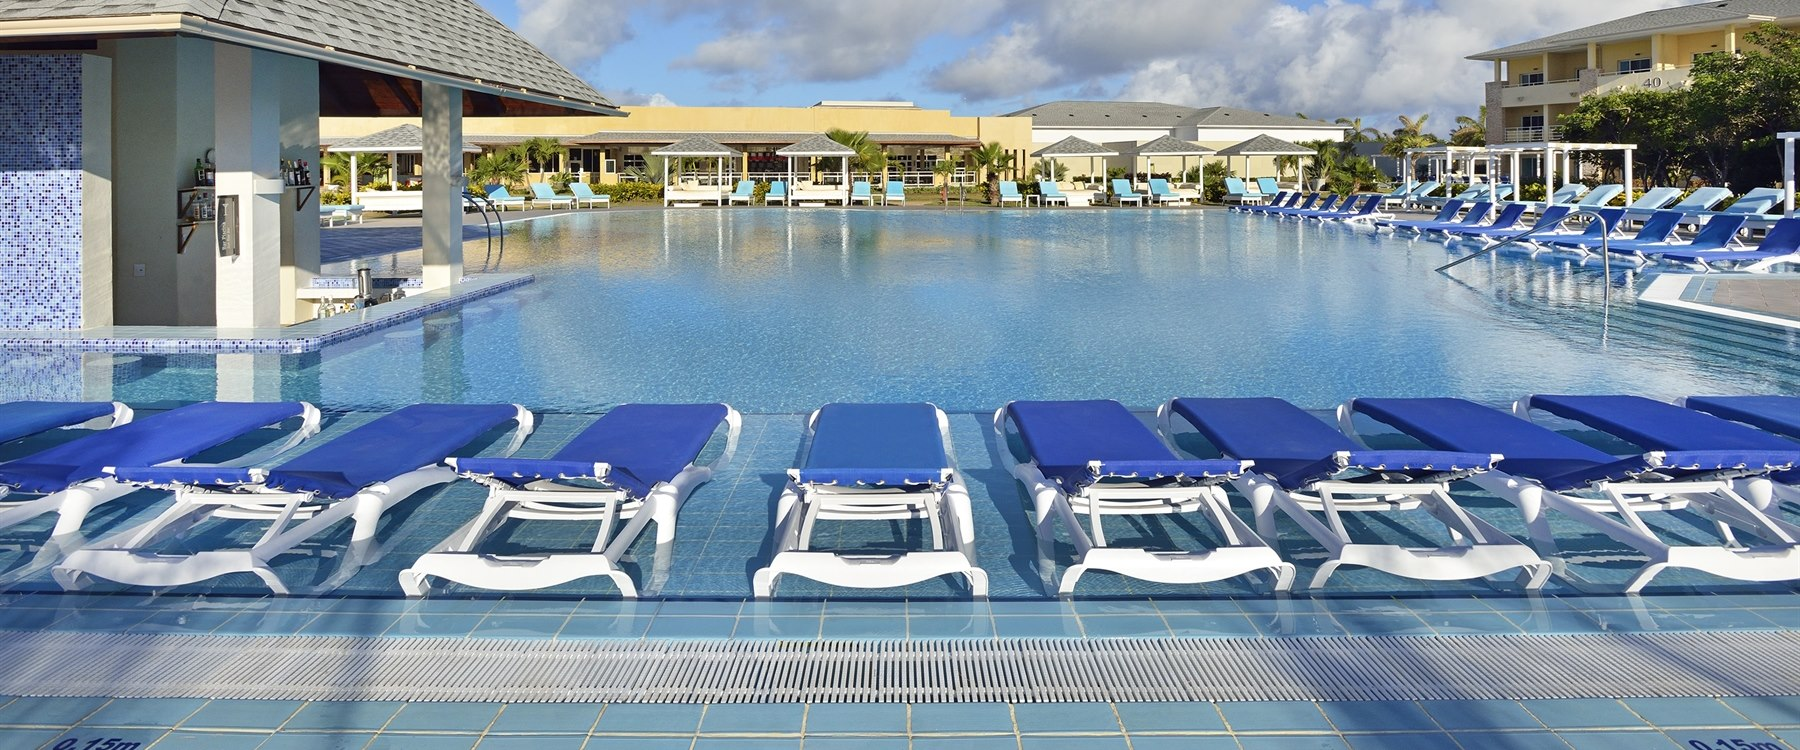 Pool Area at Paradisus Varadero